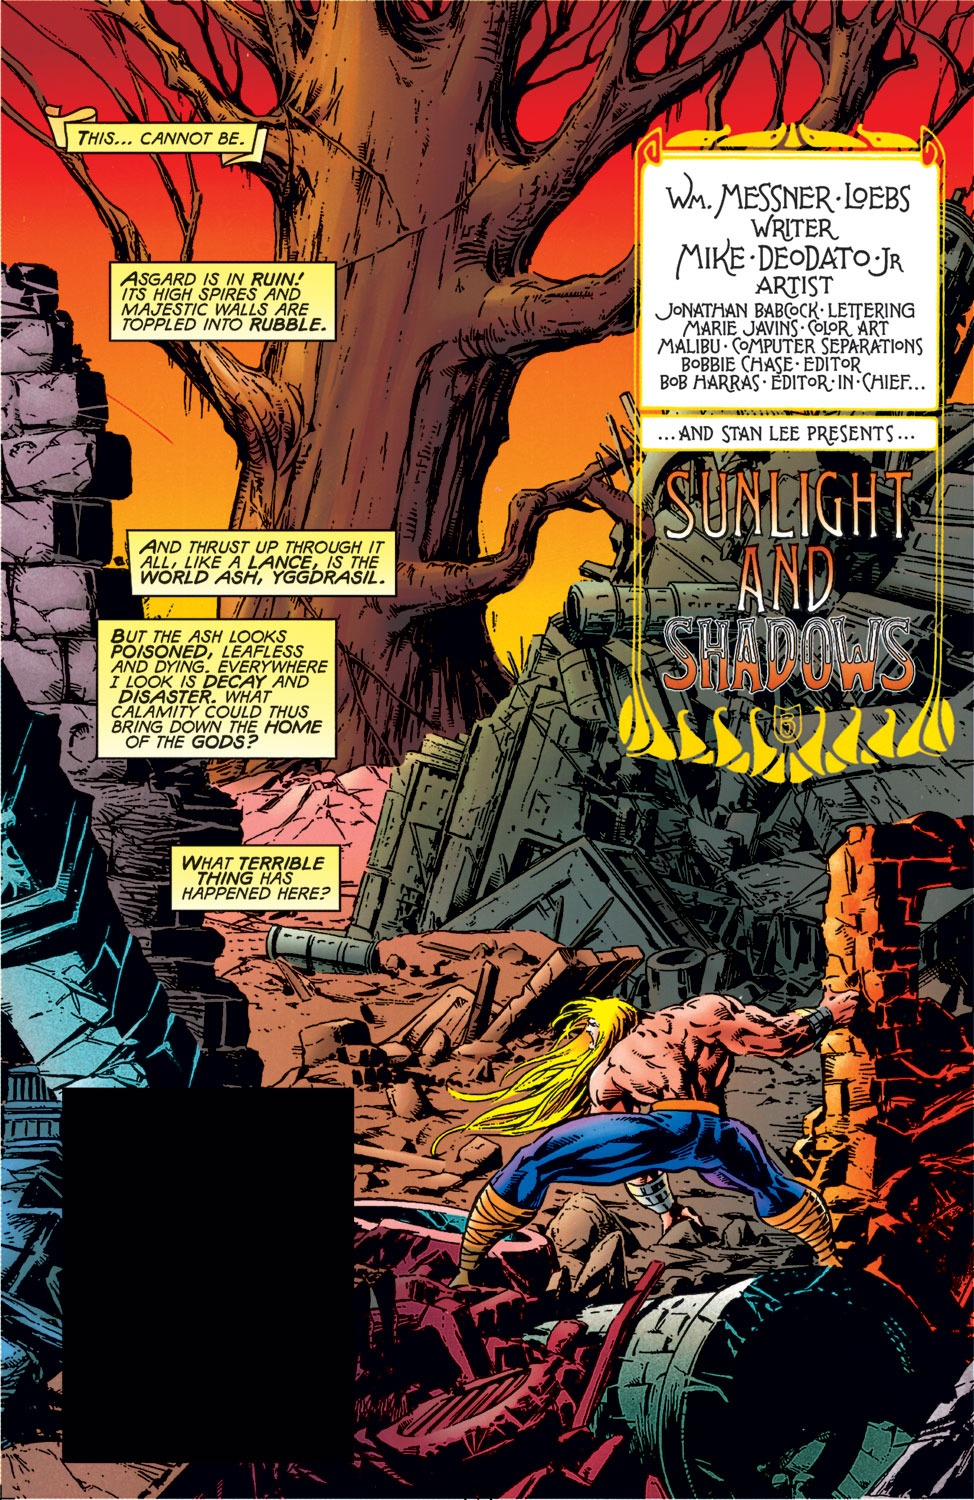 Read Online Thor 1966 Comic Issue 500